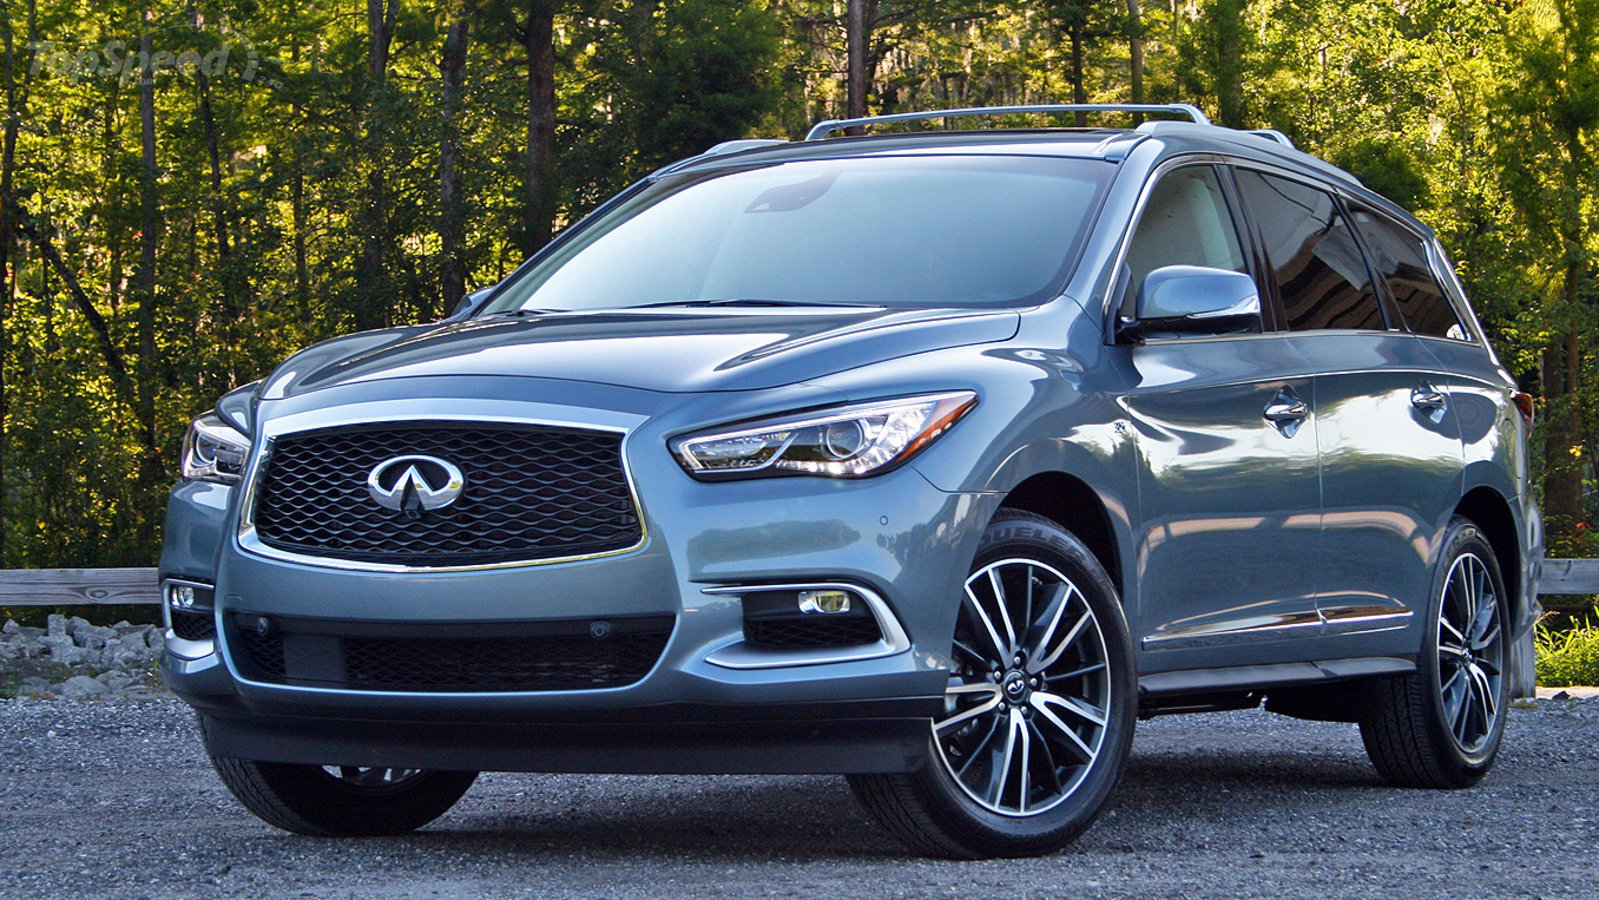 2016 infiniti qx60 driven review top speed. Black Bedroom Furniture Sets. Home Design Ideas